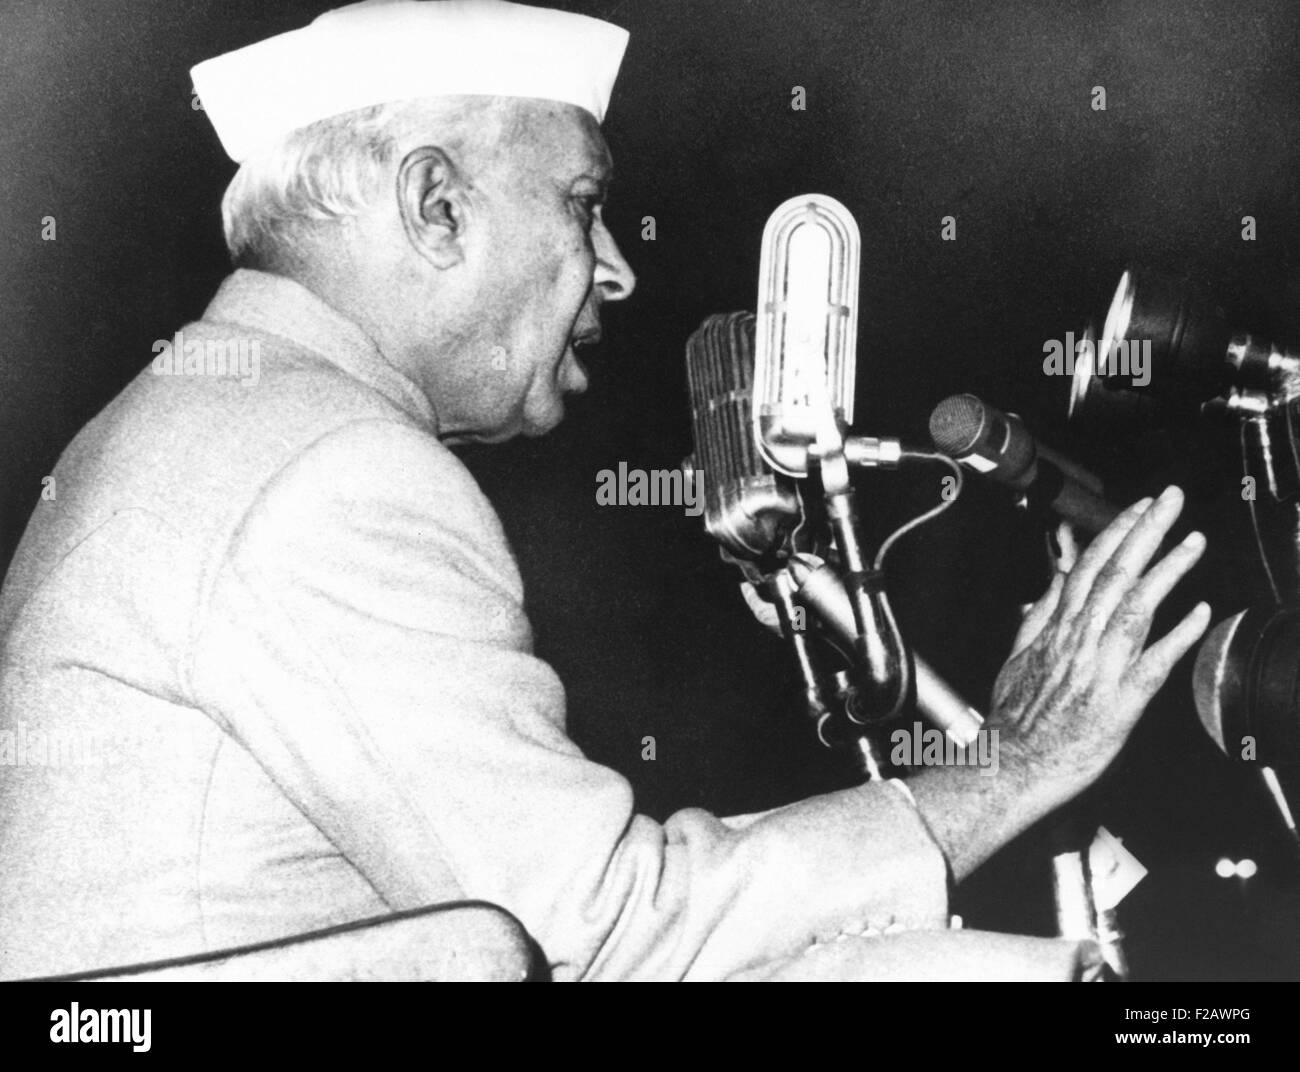 India's Prime Minister Jawaharlal Nehru addressing a defense rally in New Delhi on Nov. 11, 1962. Throughout - Stock Image